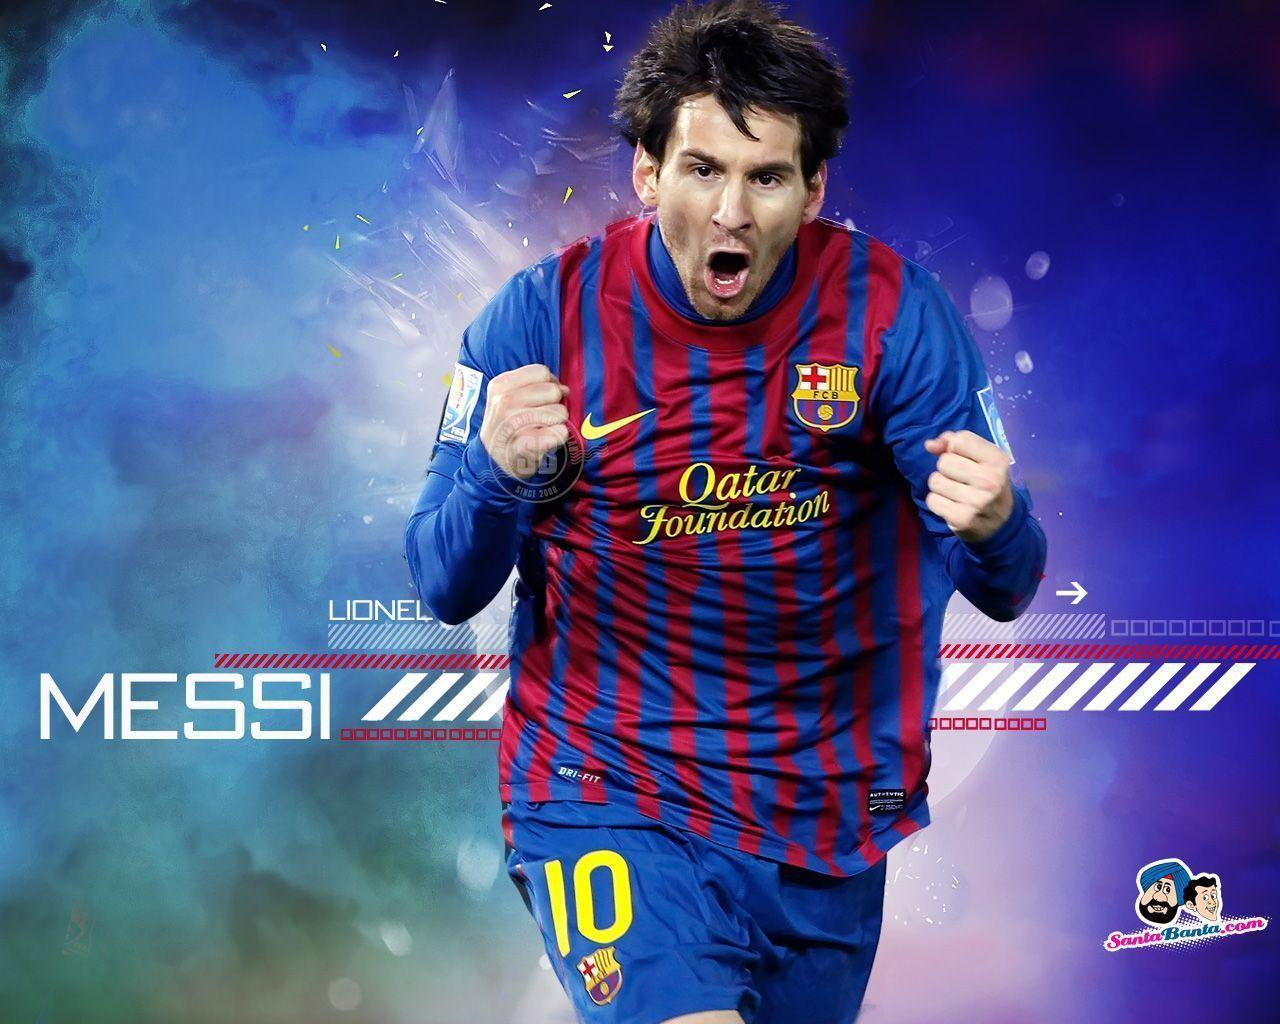 Messi HD Wallpapers 1080p 2017 Wallpaper Cave